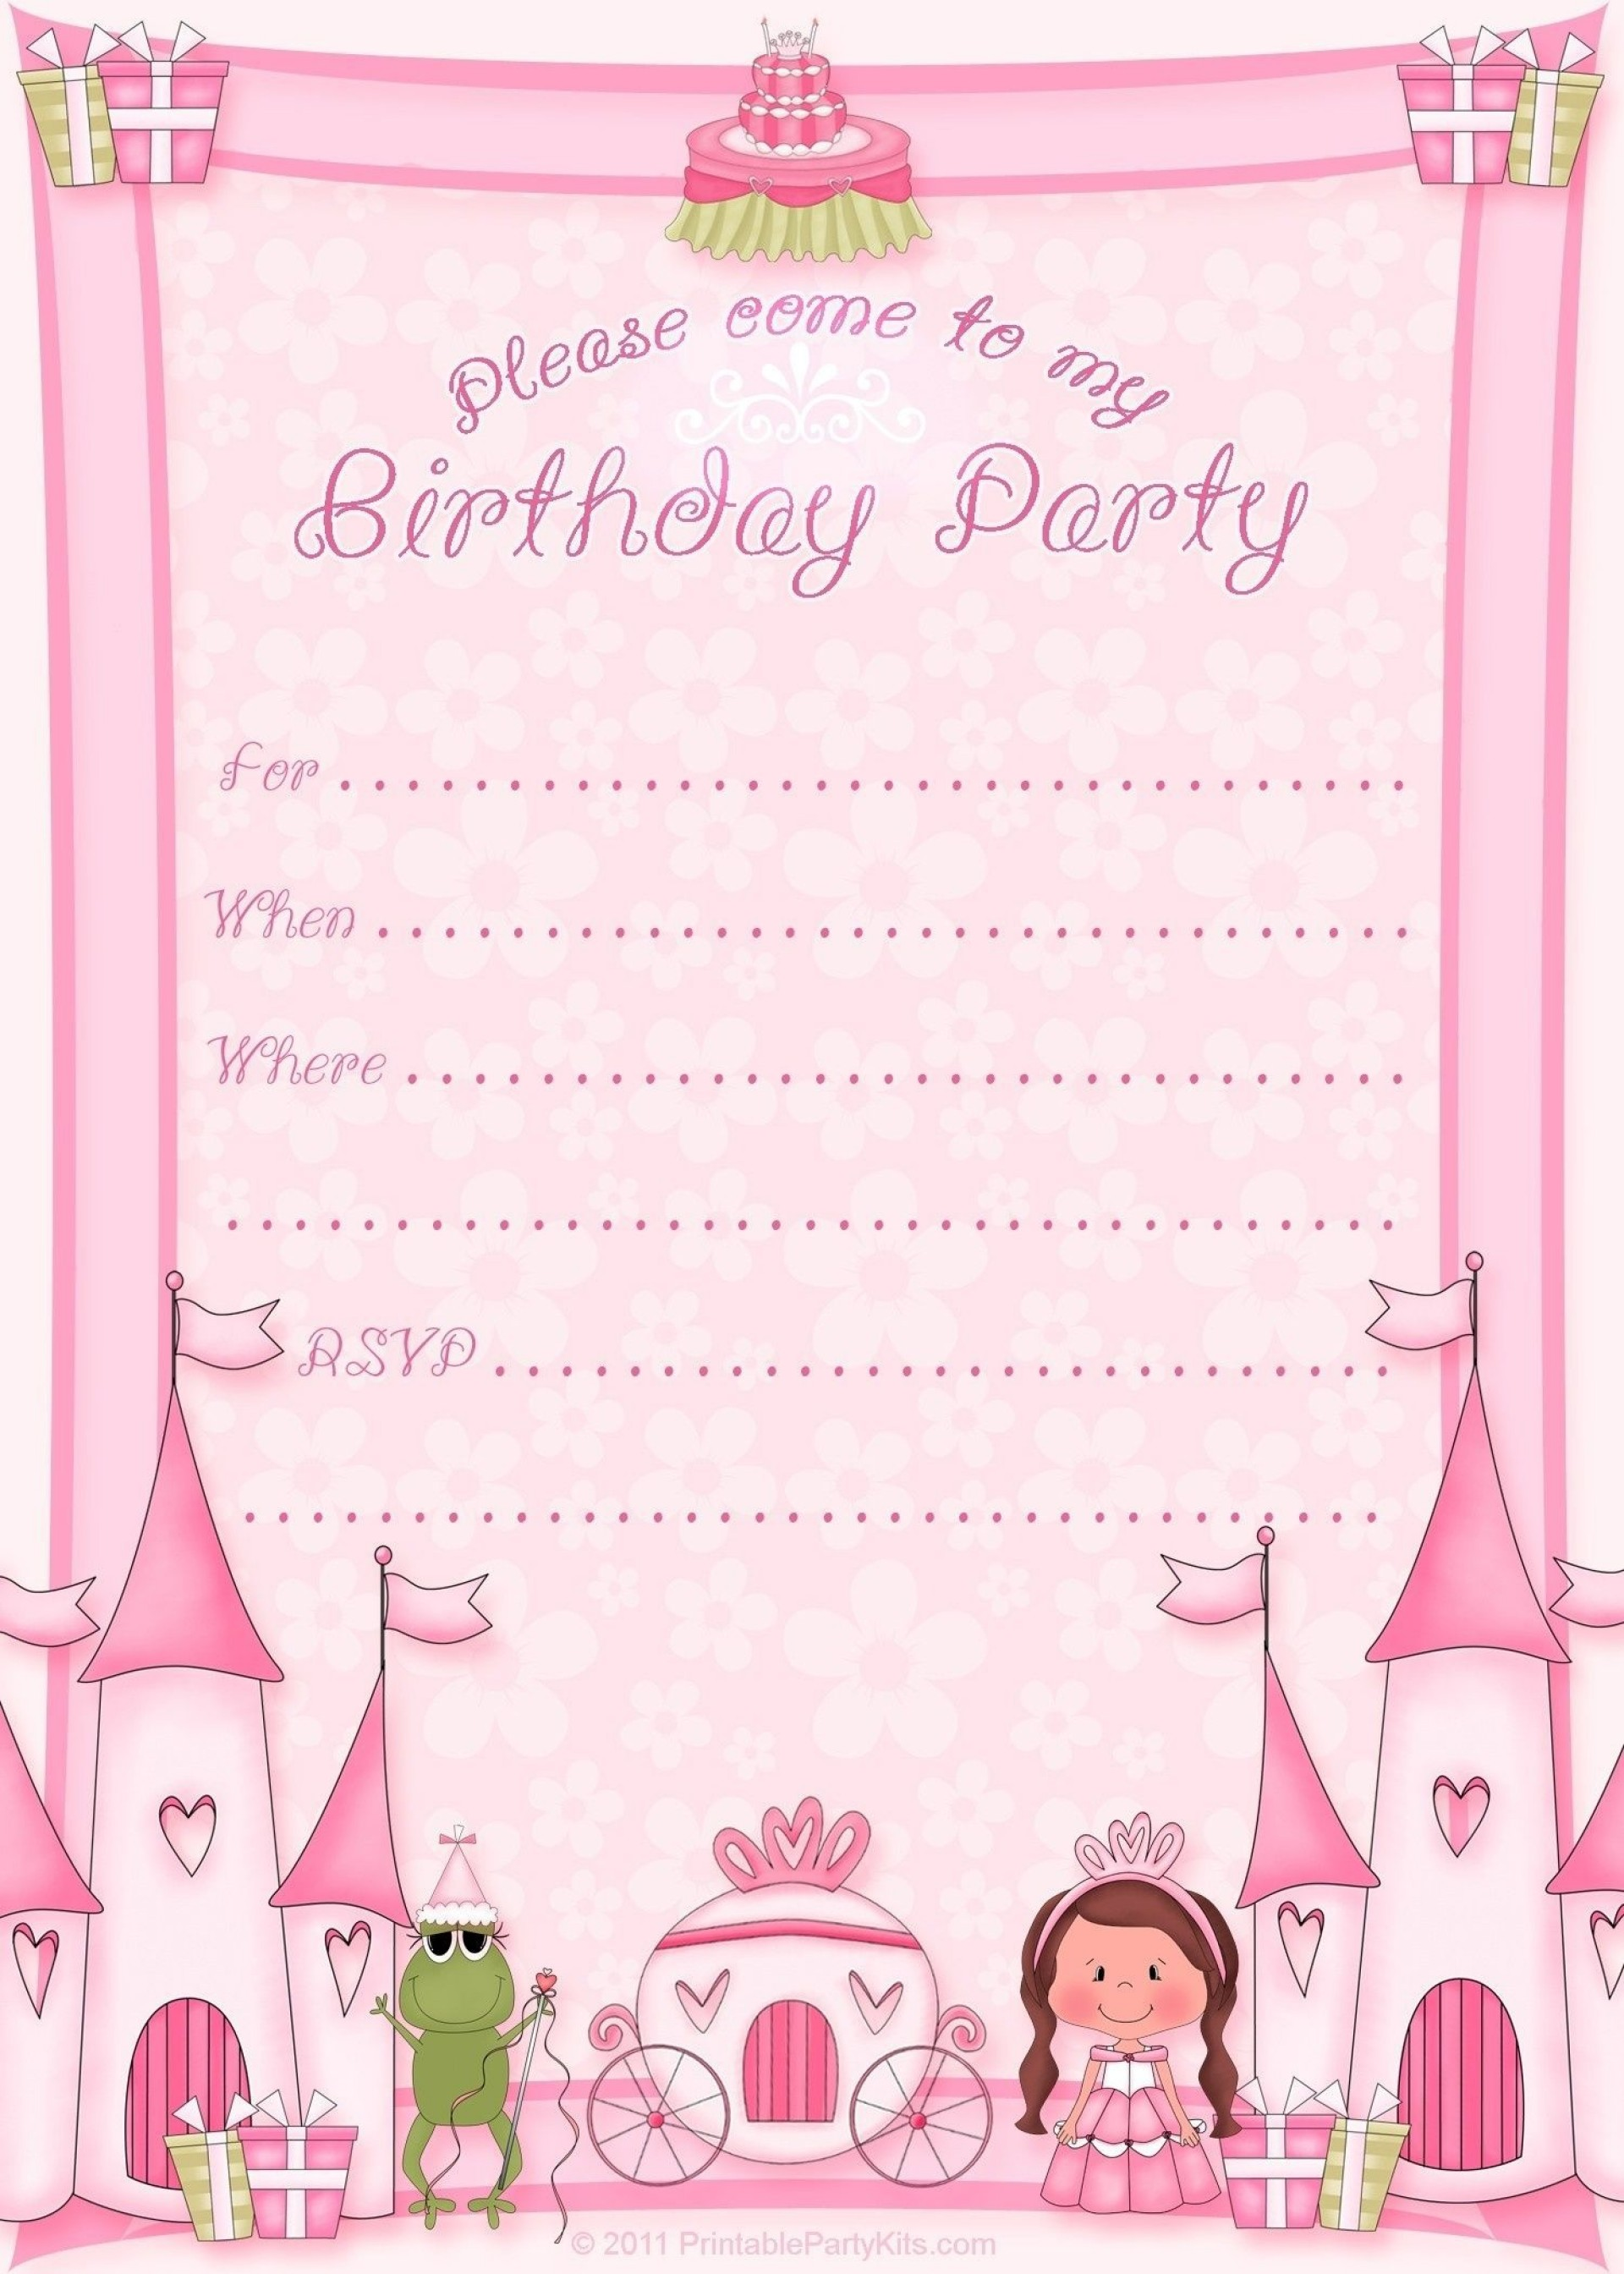 003 Wonderful Birthday Invitation Template Free Download Inspiration  Editable Video Twin First Downloadable 18th Printable1920